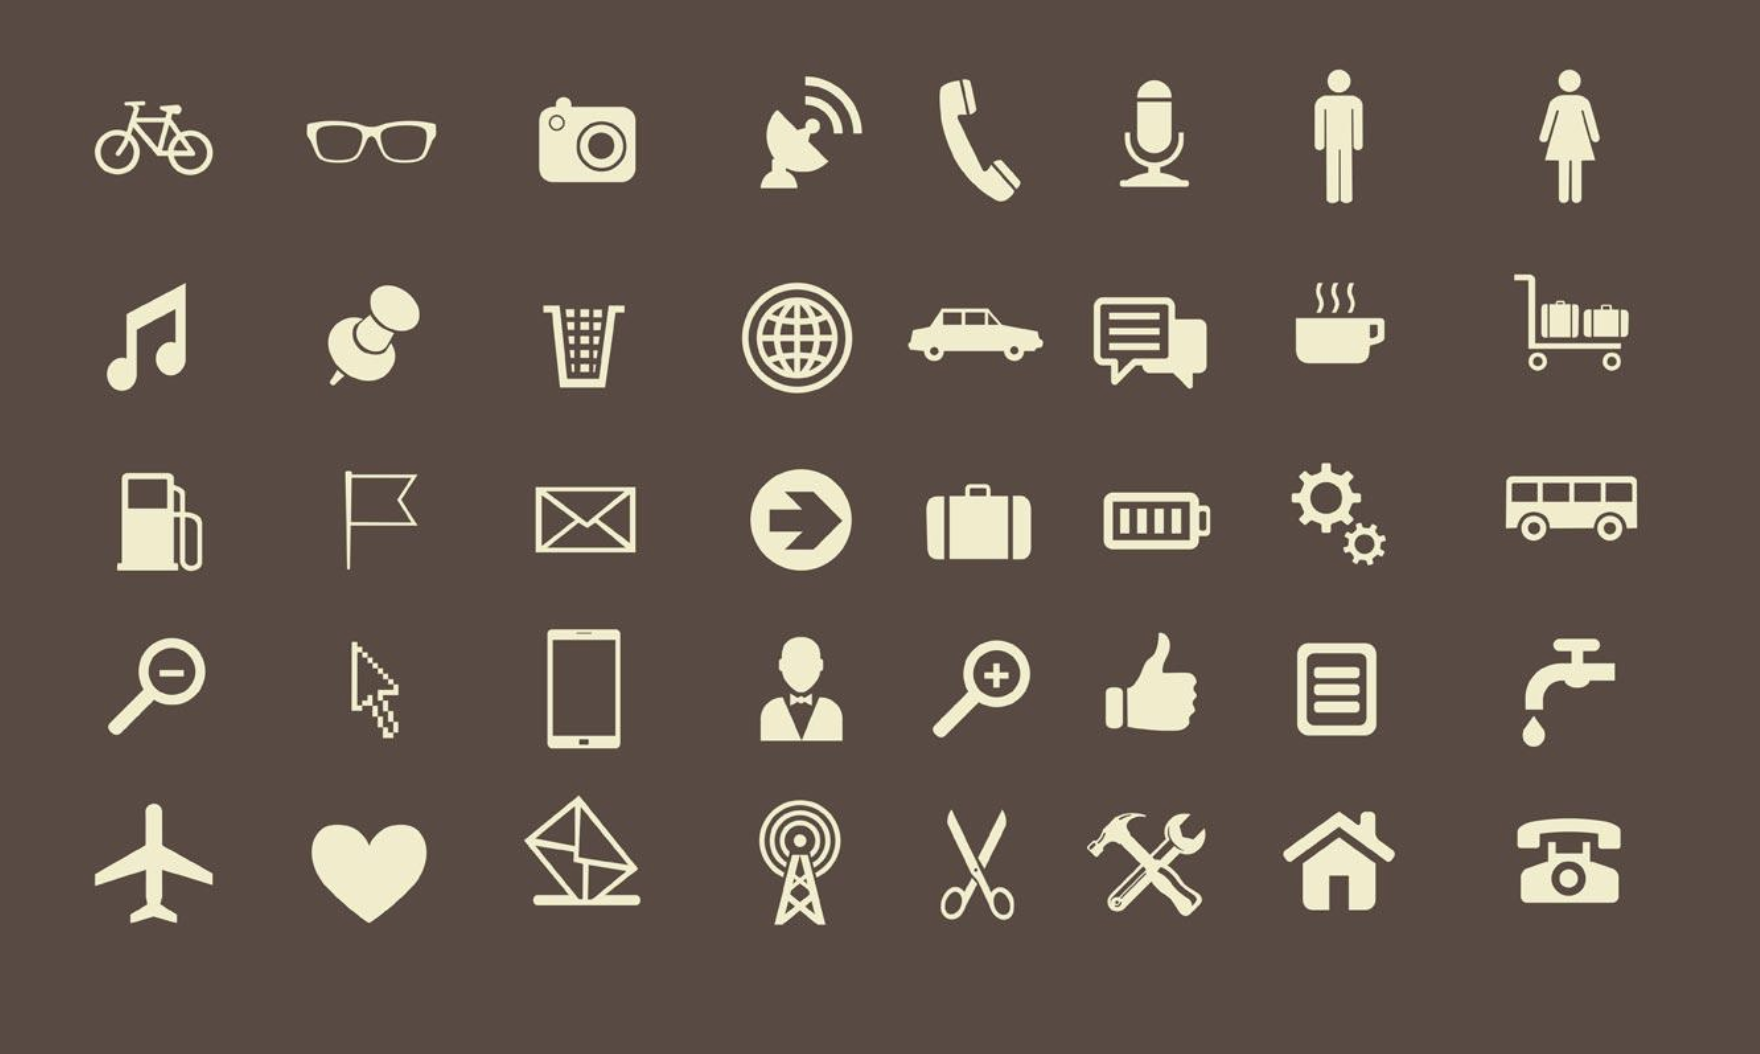 A screenshot of free vector icons from Vecteezy